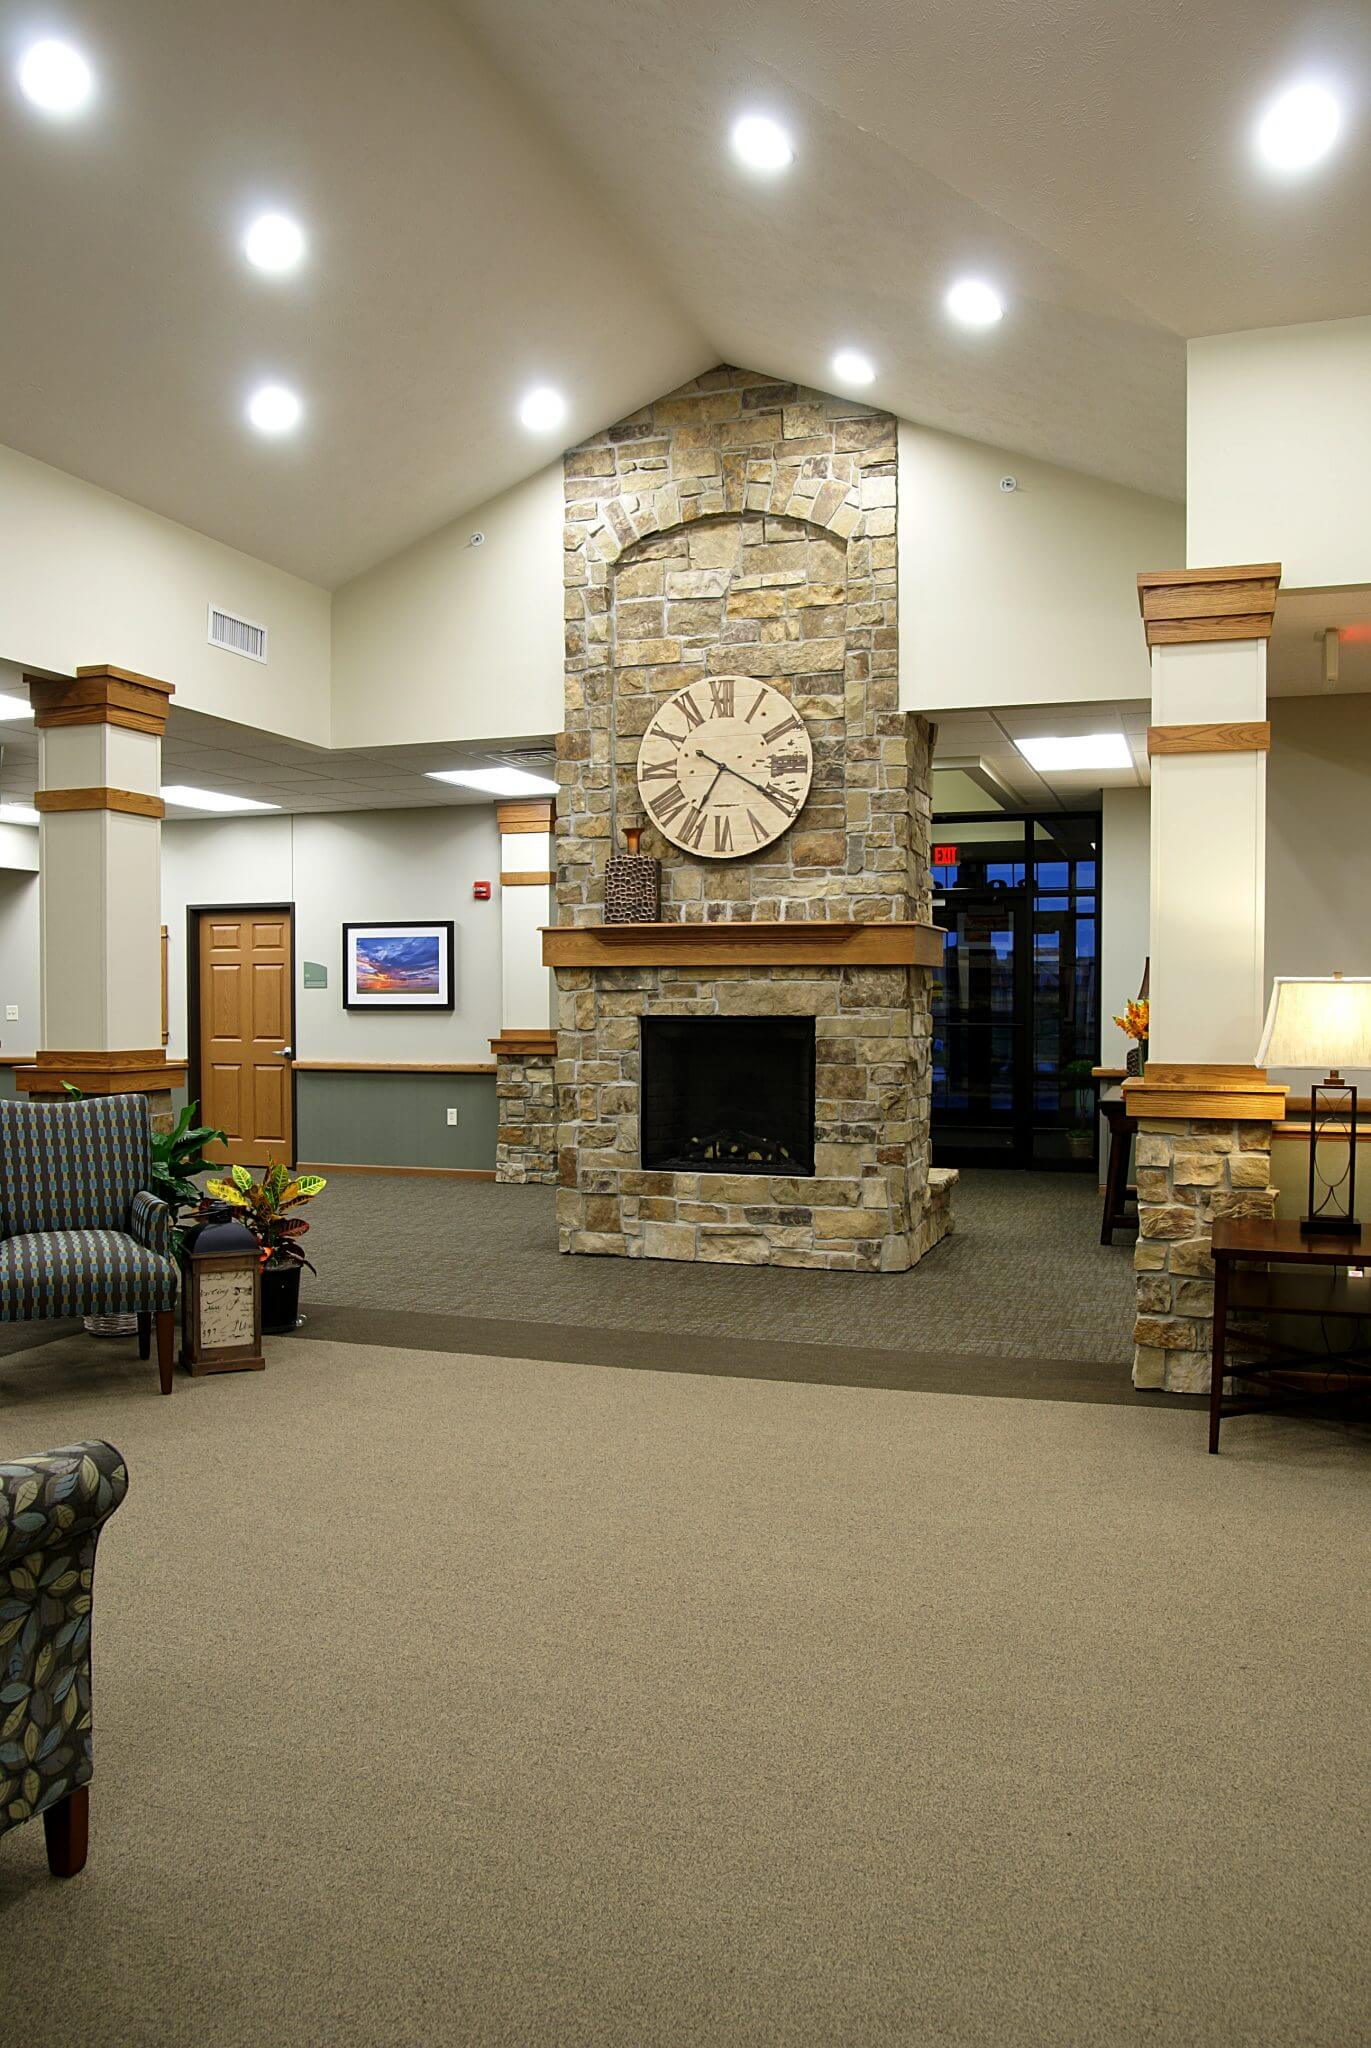 interior shot of welcome area with fireplace